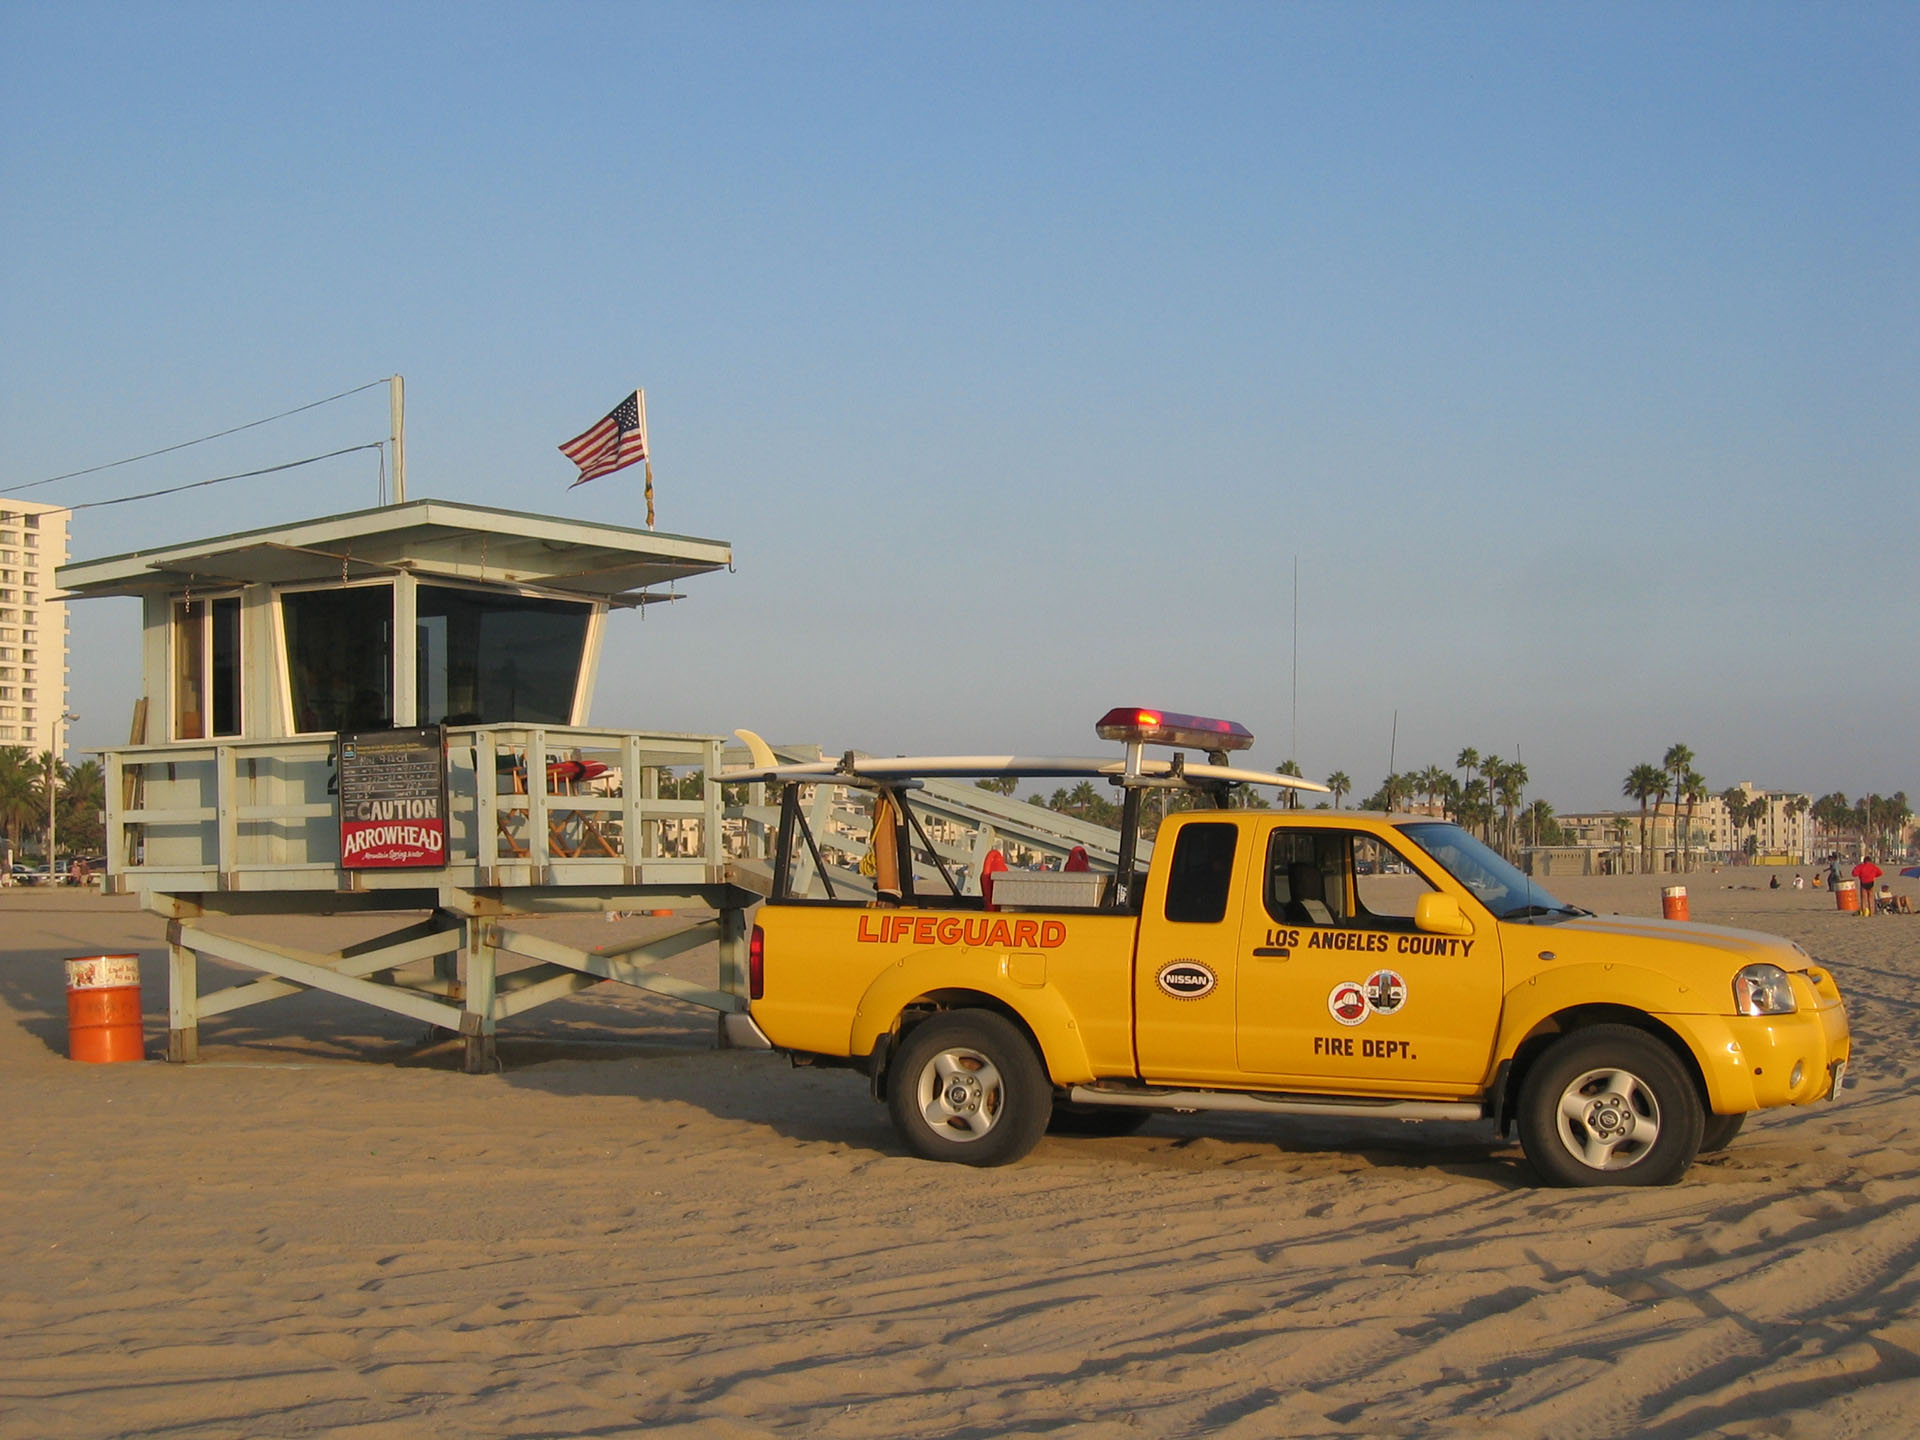 L.A. - Venice Beach - Lifeguard